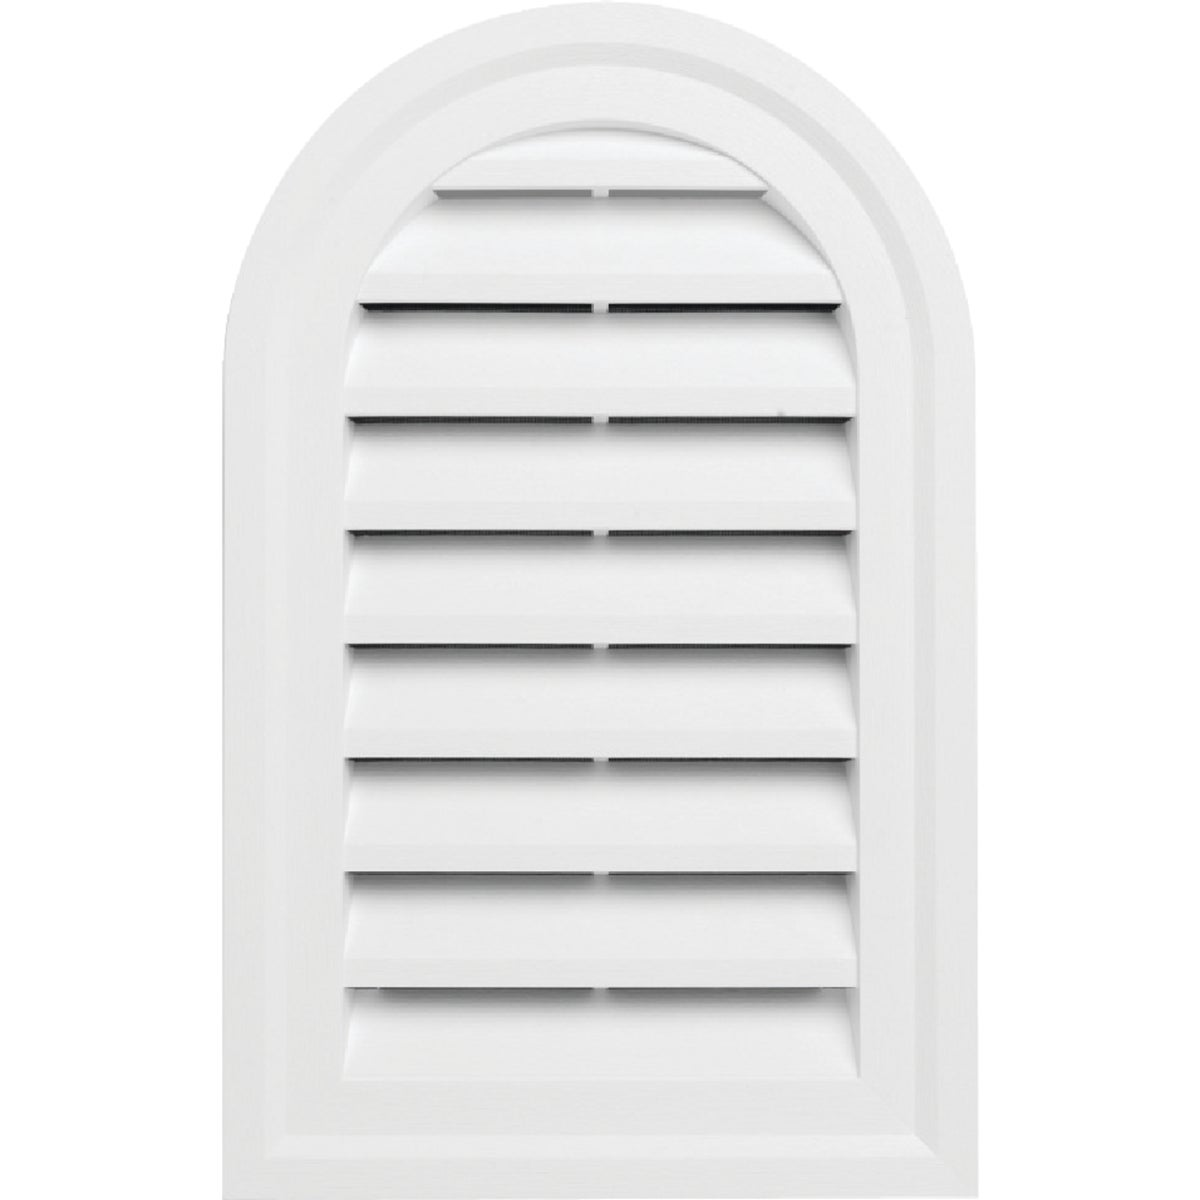 WHT RND/TOP GABLE VENT - RDTOPGV14 PW by Alcoa Home Exteriors